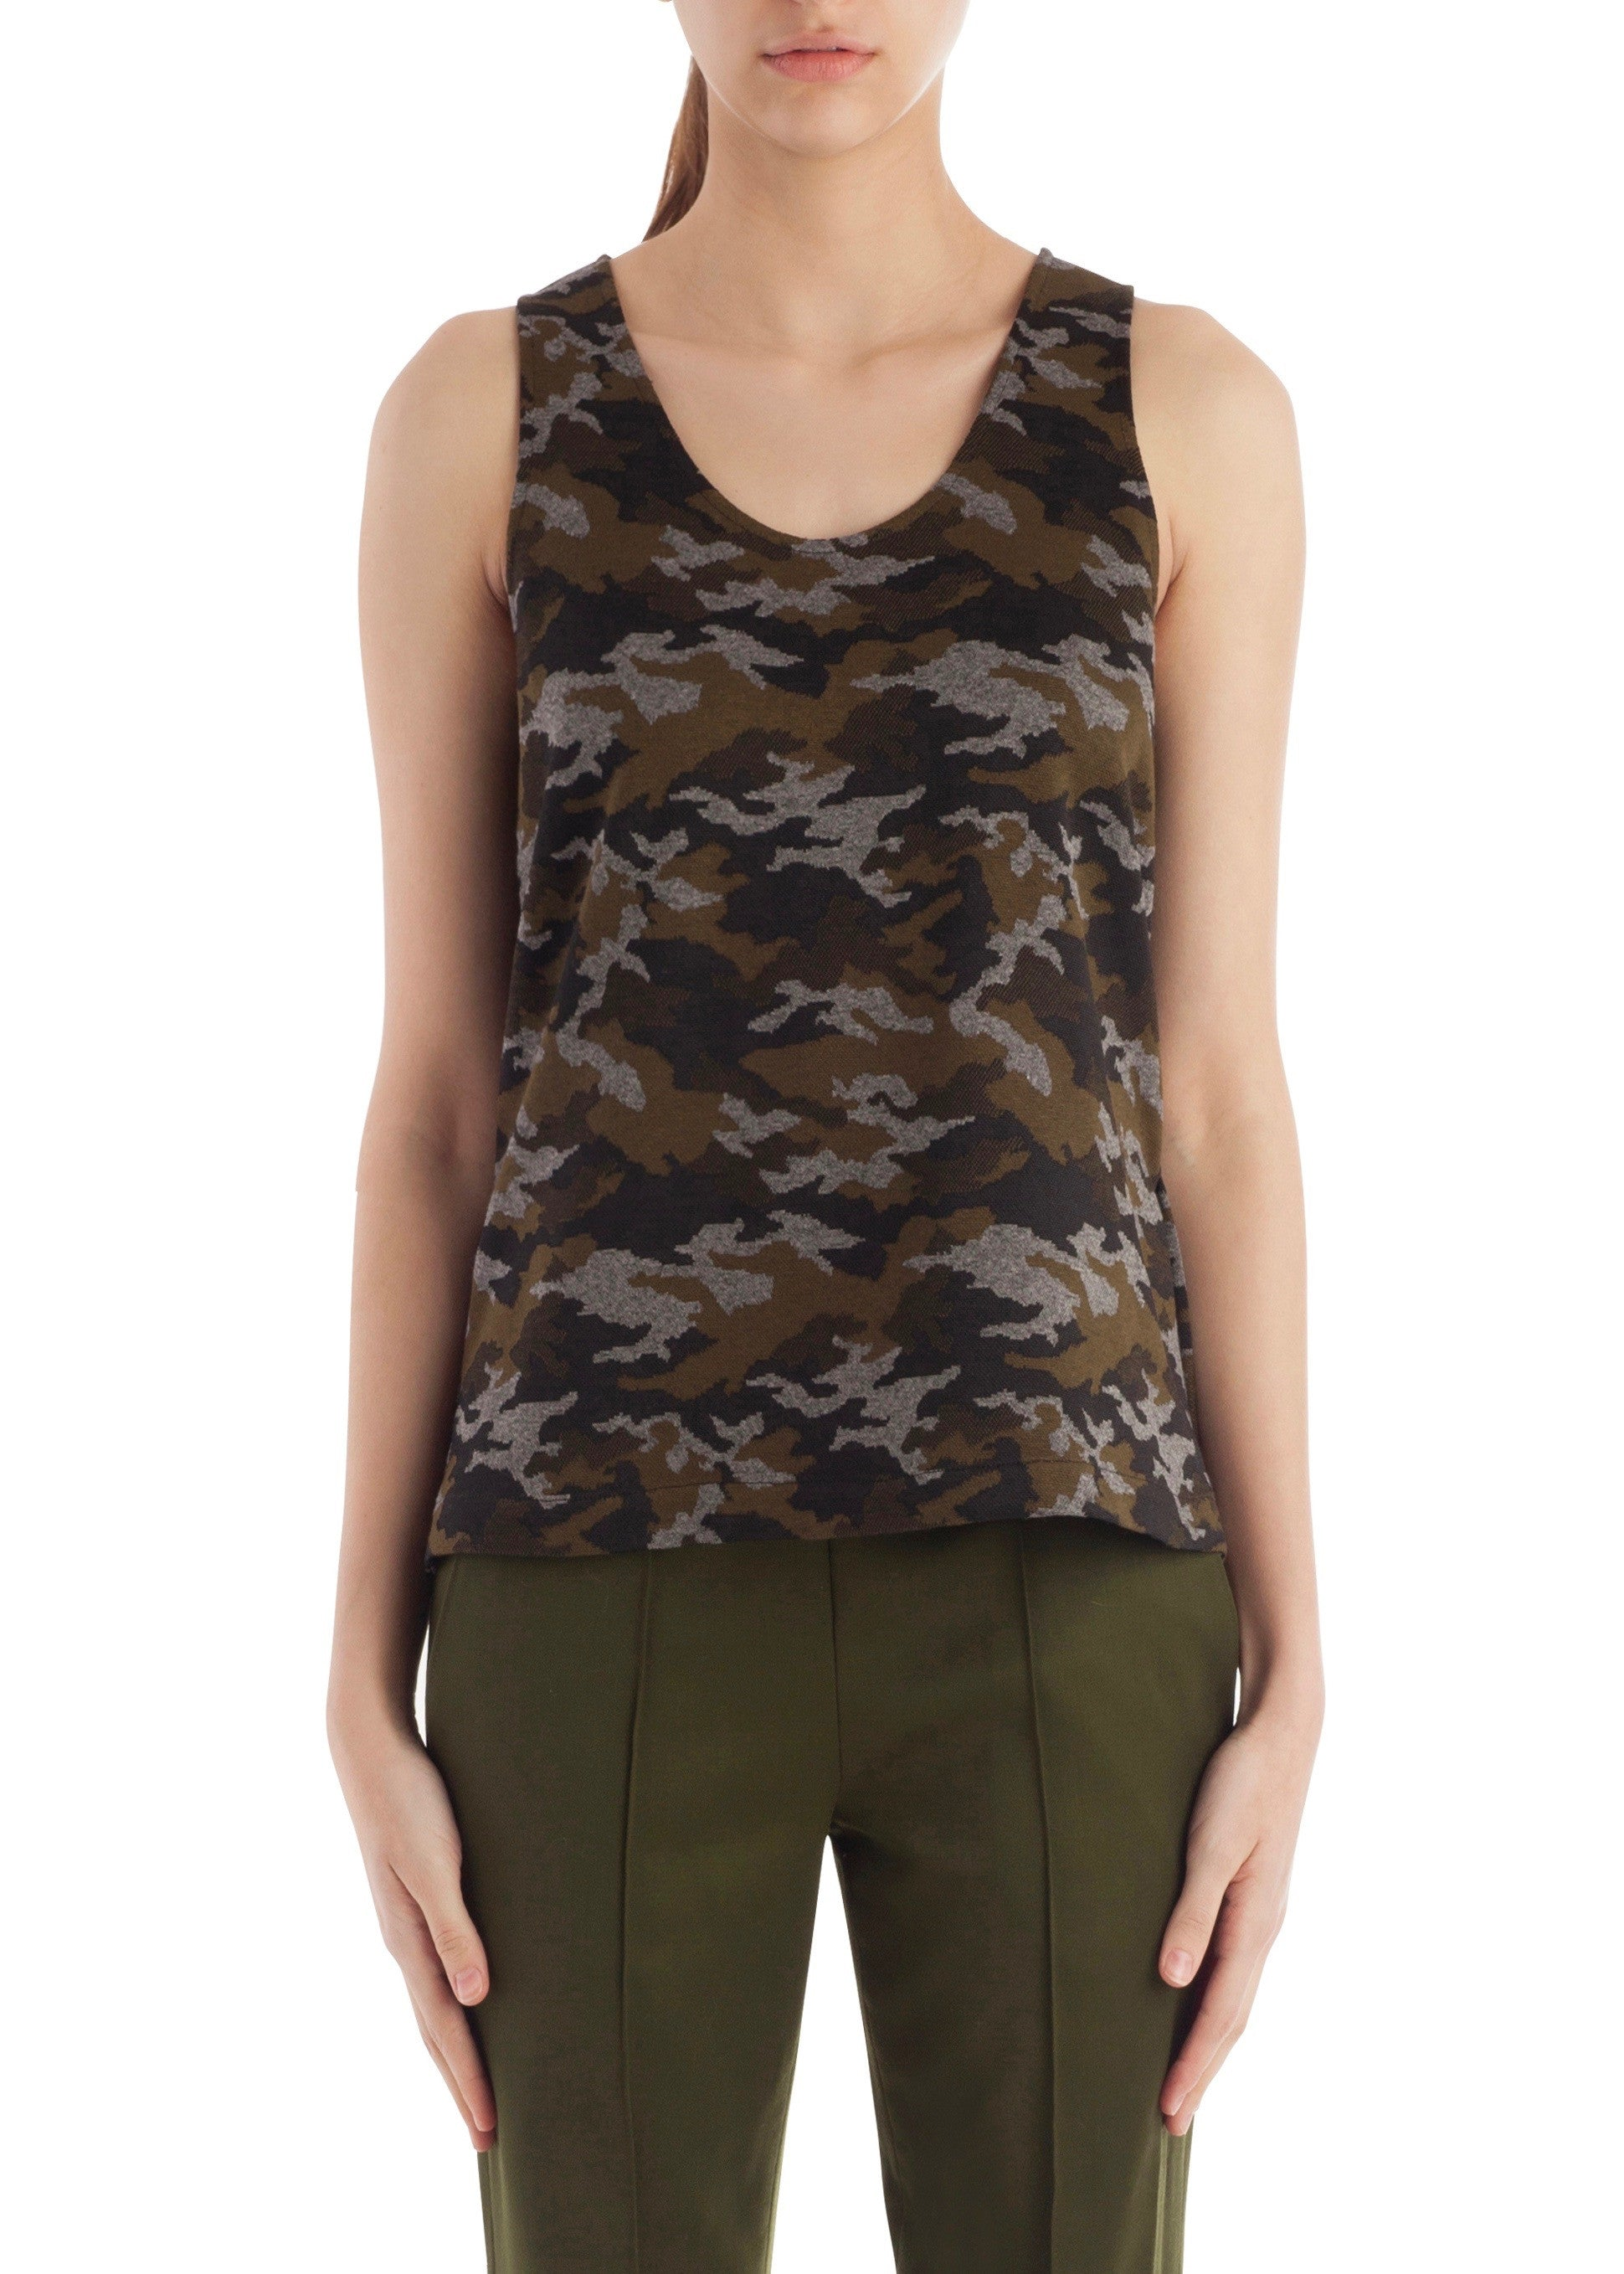 Arias tank top with vents camo